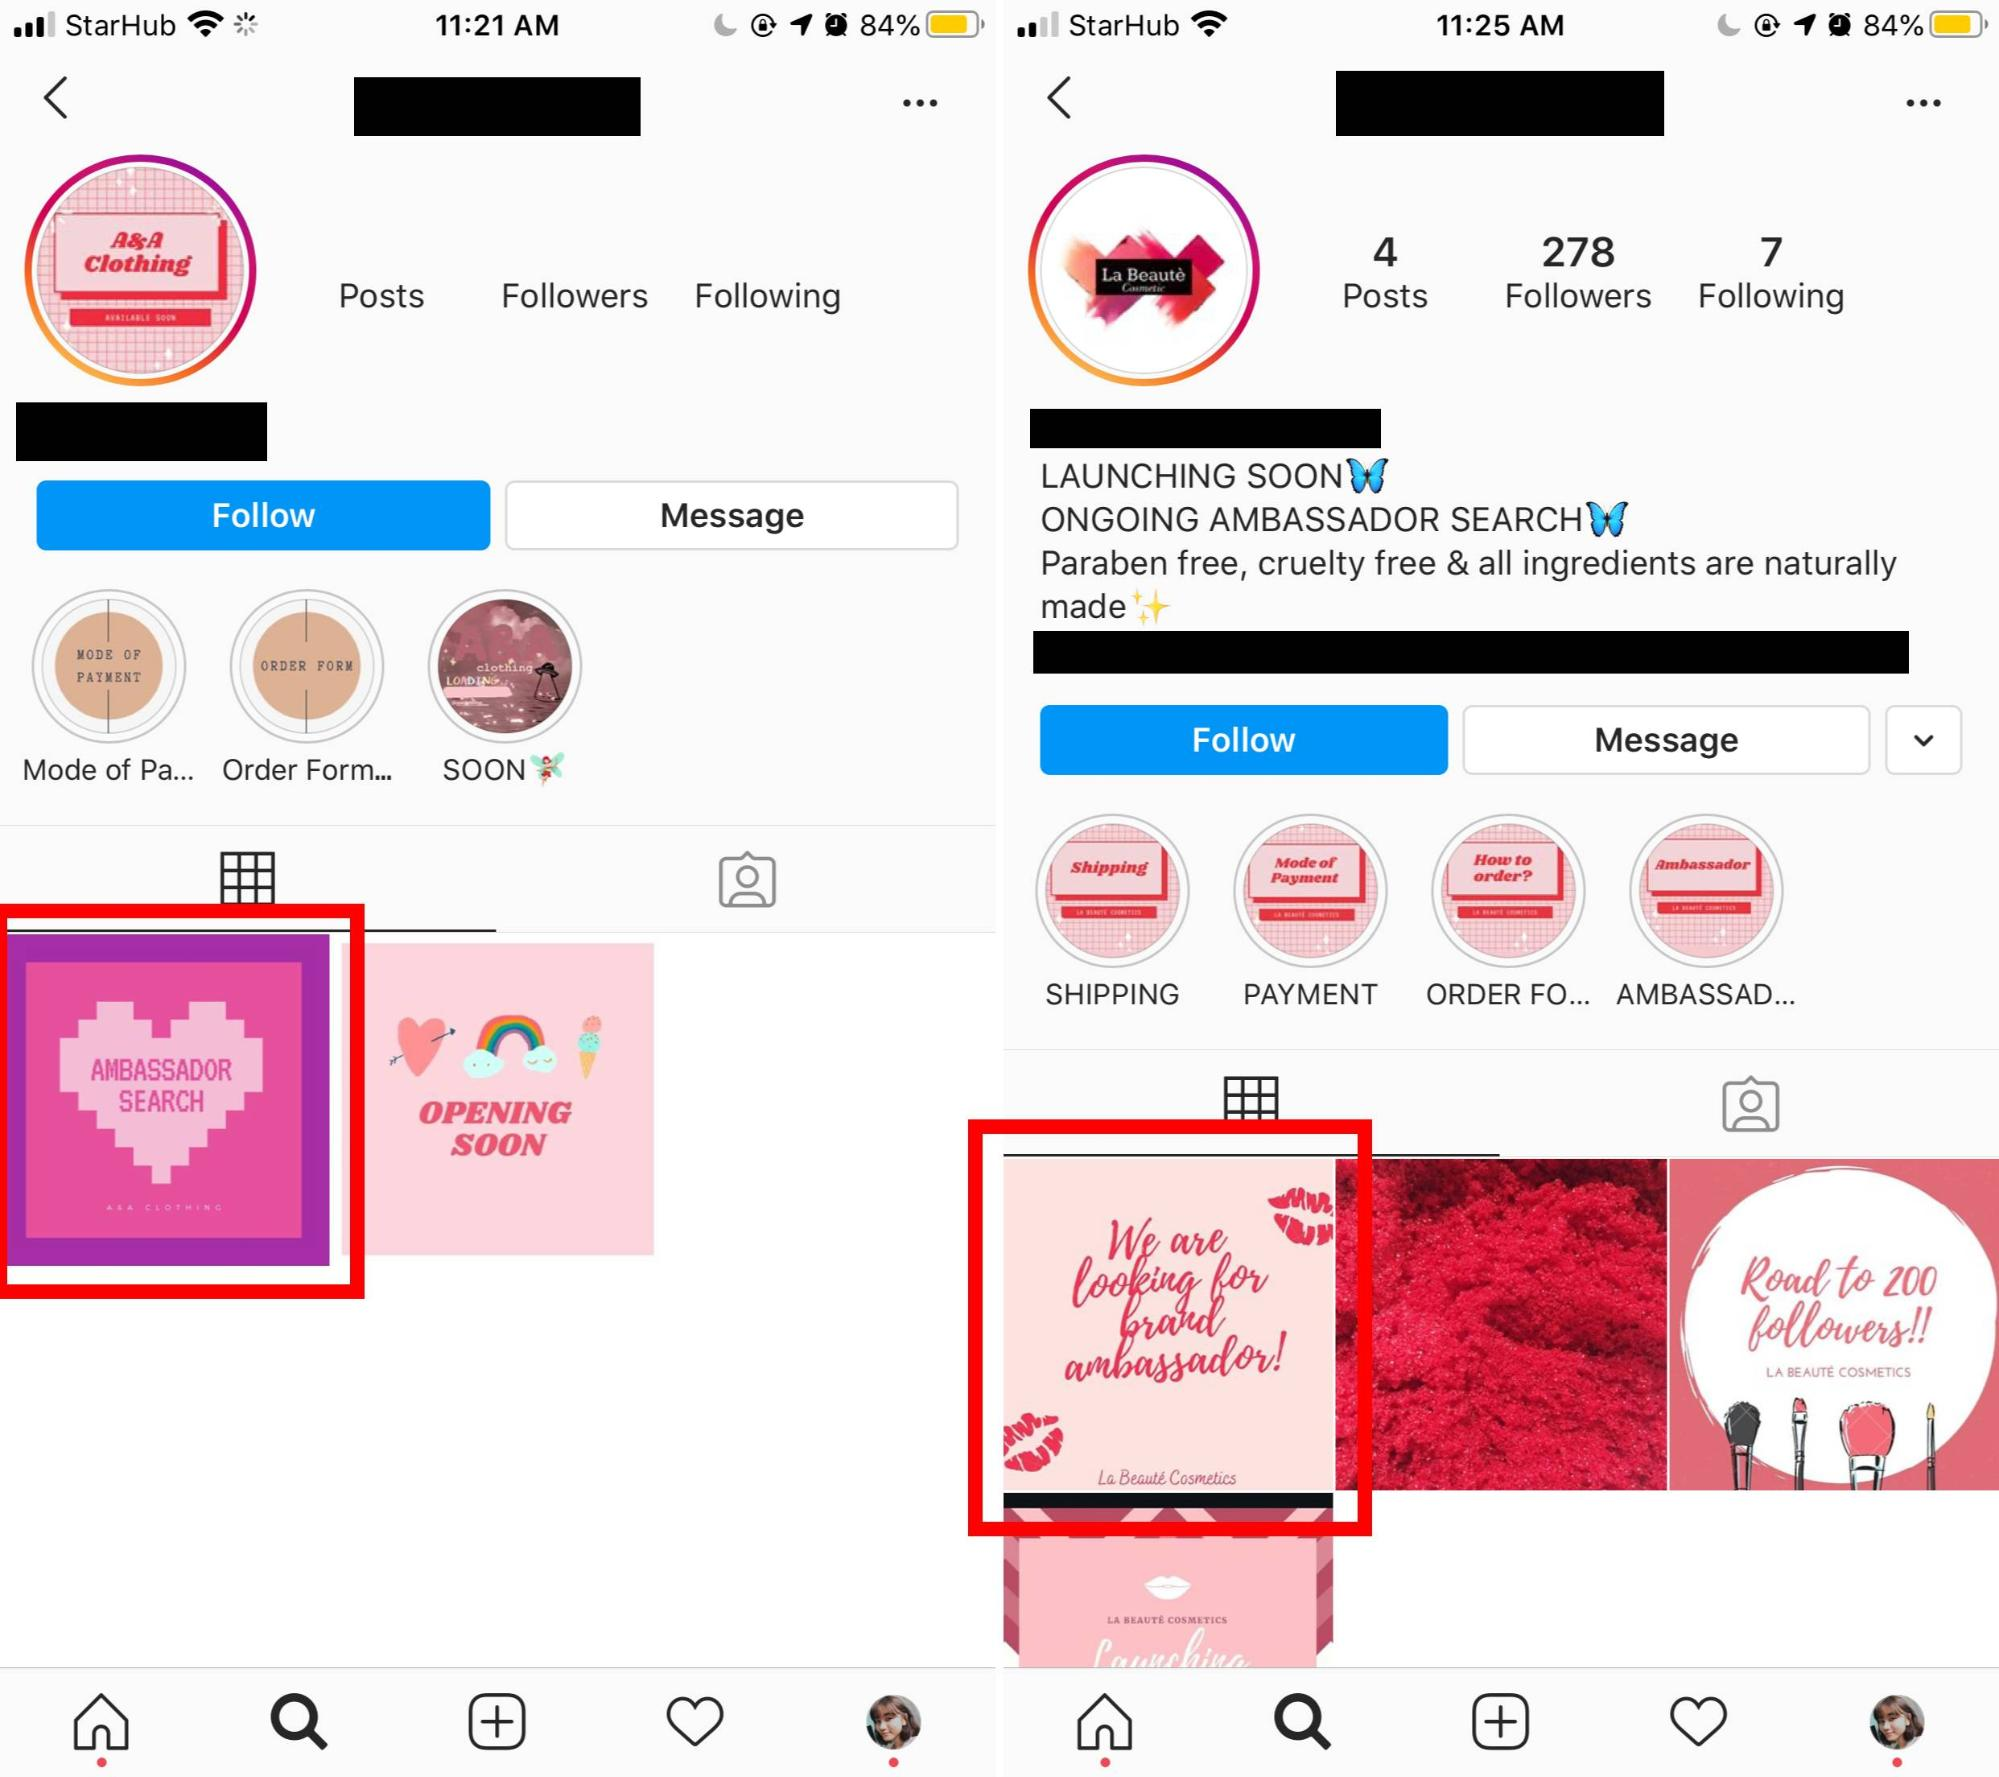 common scams in Singapore - Instagram influencer scams have been on the rise.